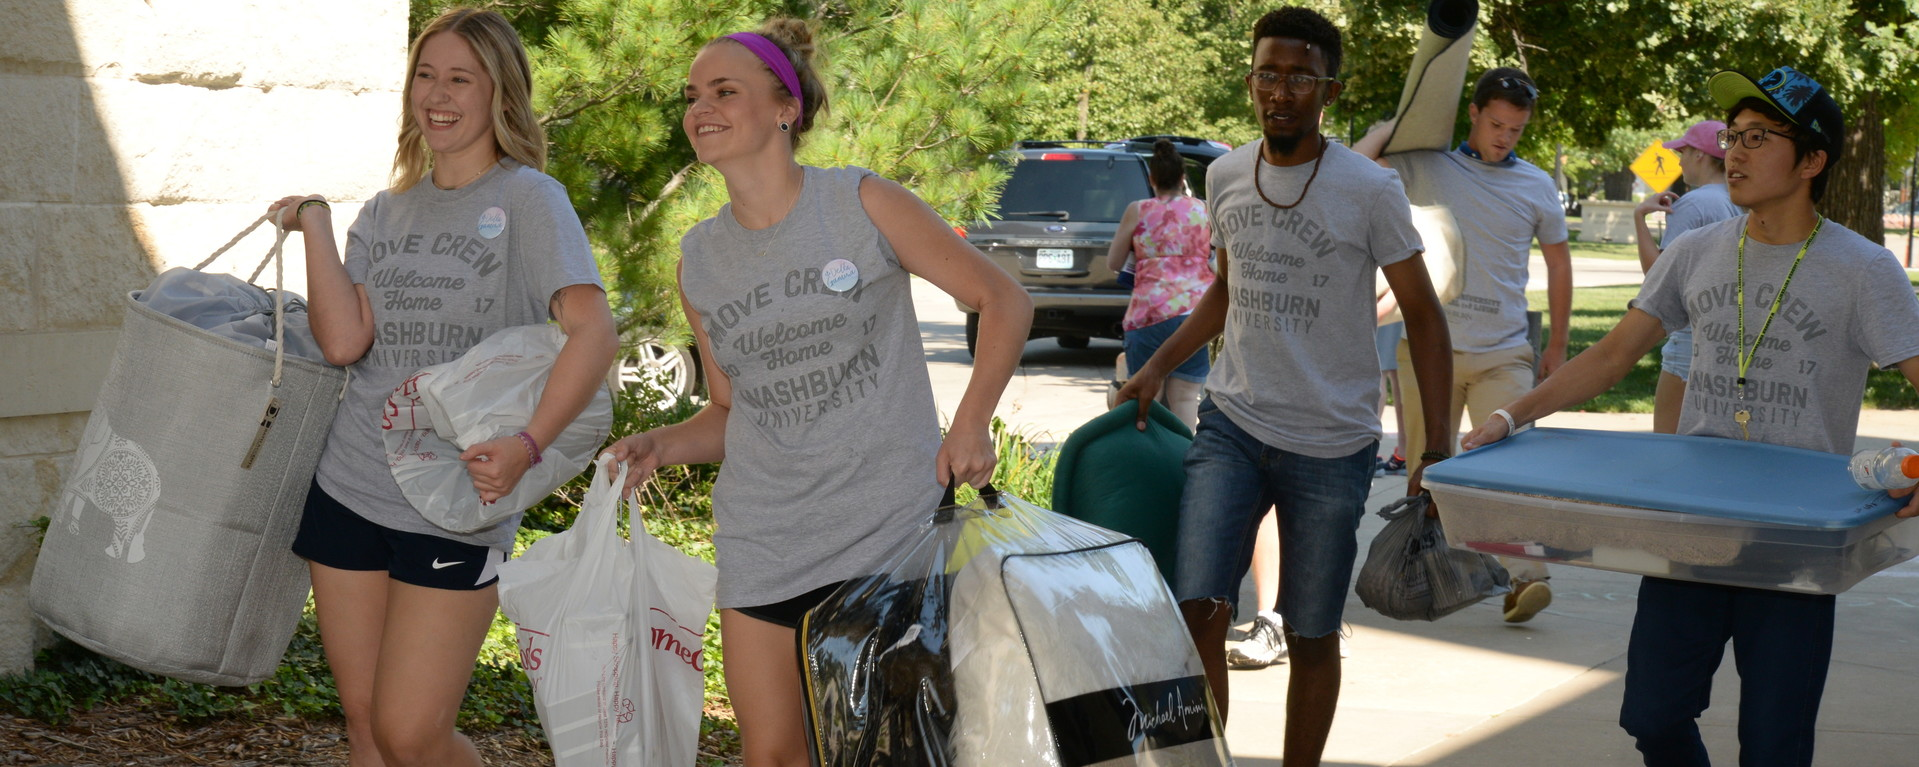 Washburn students helping new students move in to residence halls